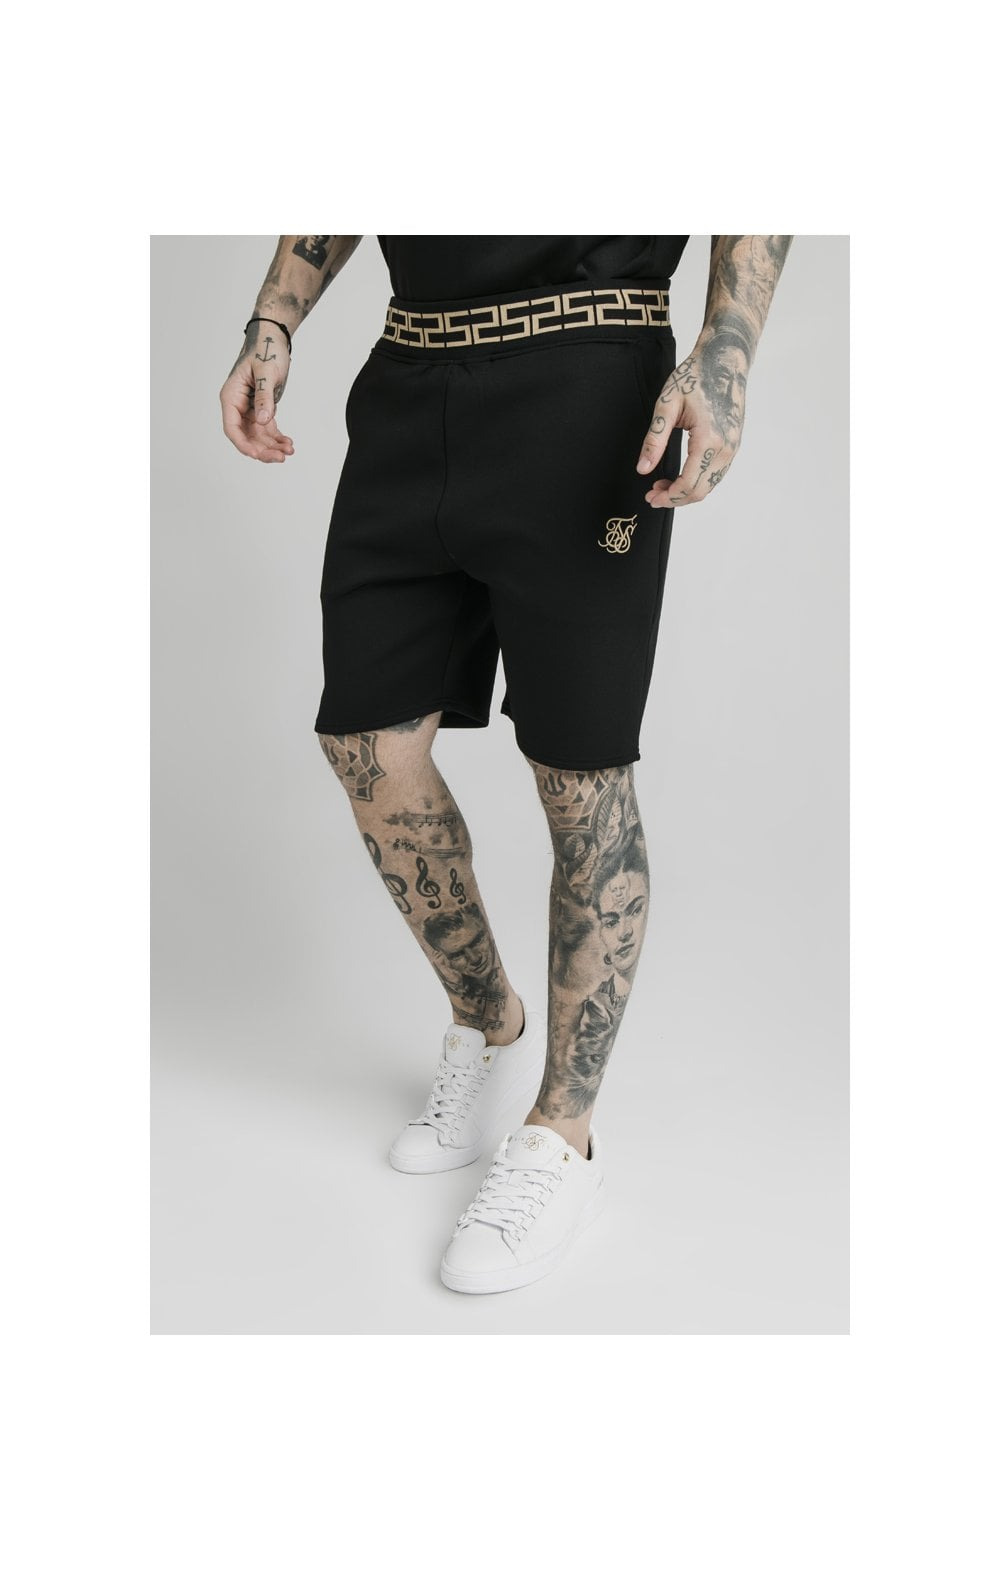 Load image into Gallery viewer, SikSilk Chain Rib Relaxed Shorts - Black